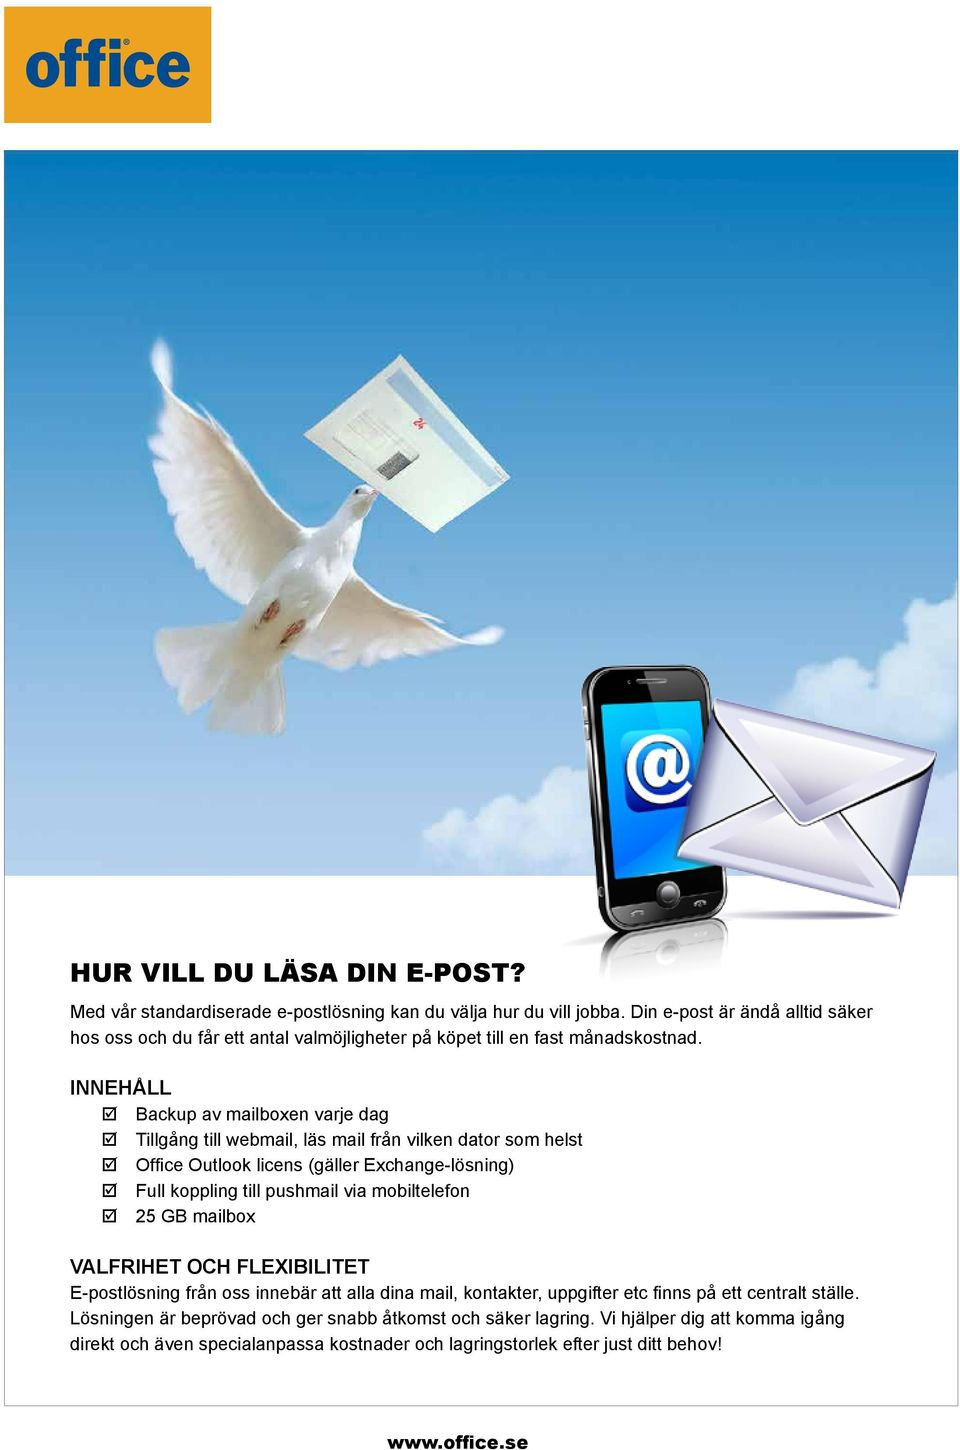 INNEHÅLL Backup av mailboxen varje dag Tillgång till webmail, läs mail från vilken dator som helst Office Outlook licens (gäller Exchange-lösning) Full koppling till pushmail via